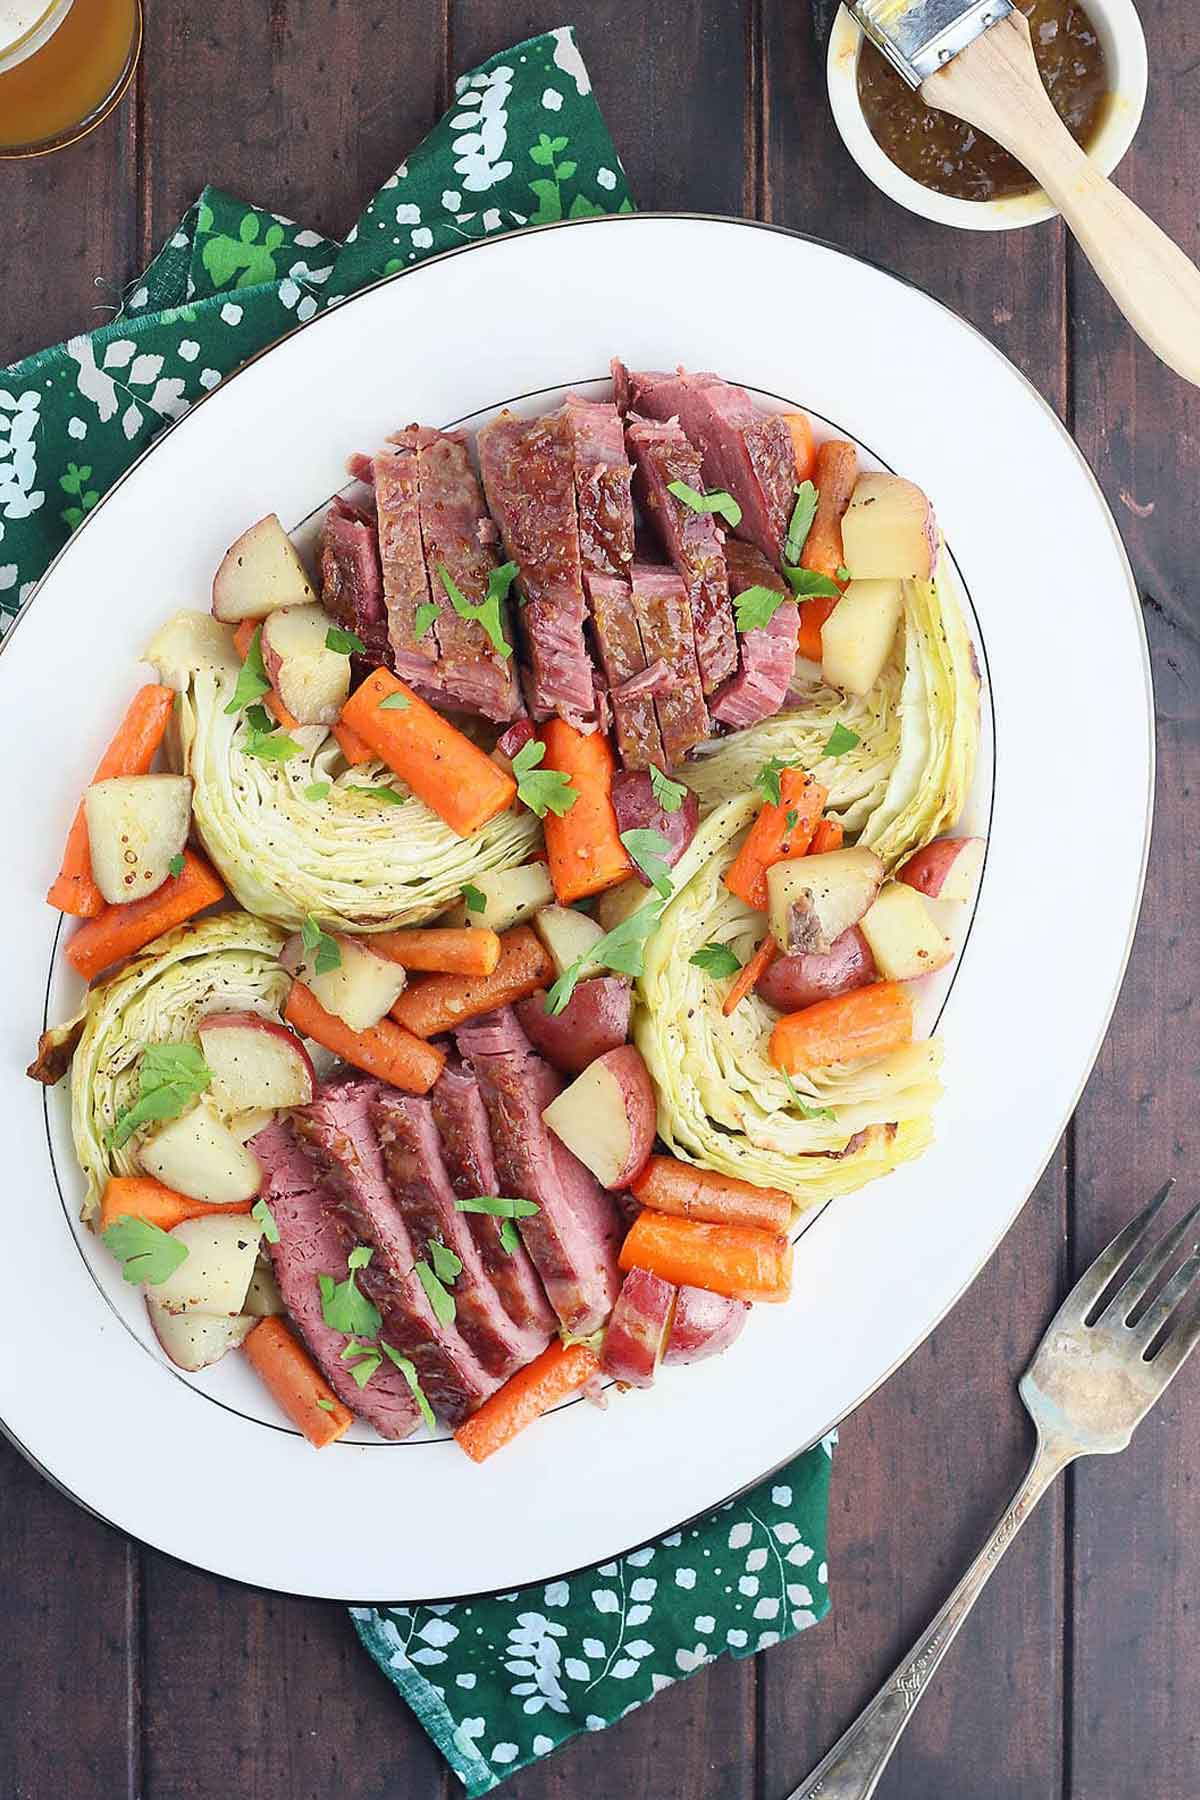 A large serving plate of corn beef and cabbage.